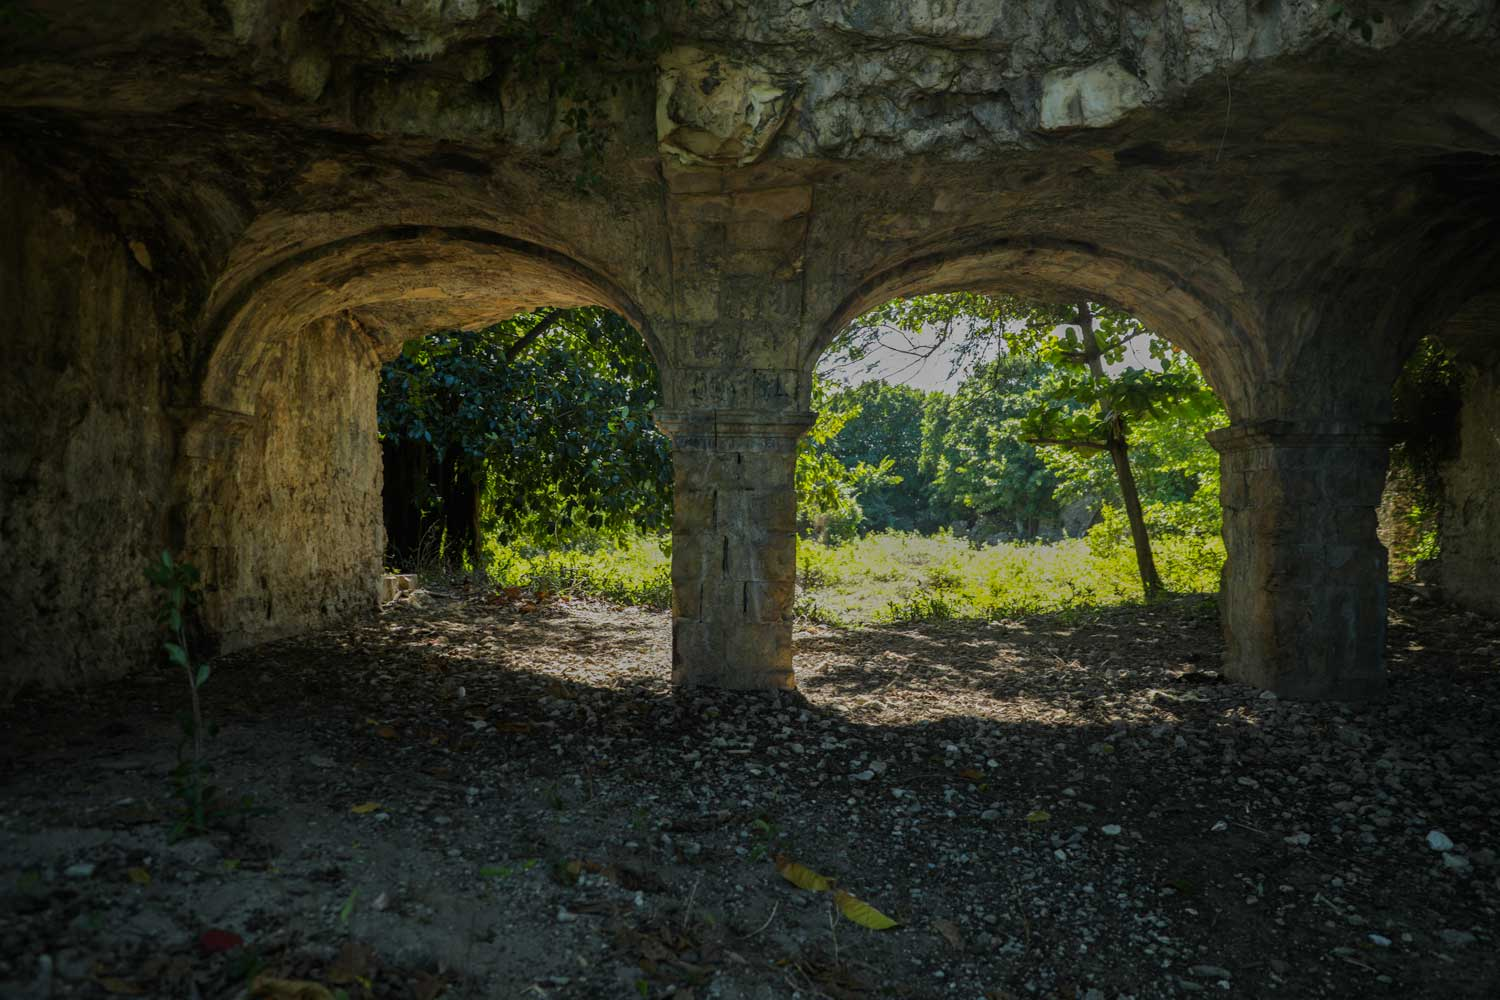 Stone archways at Fort des Anglais, Haiti